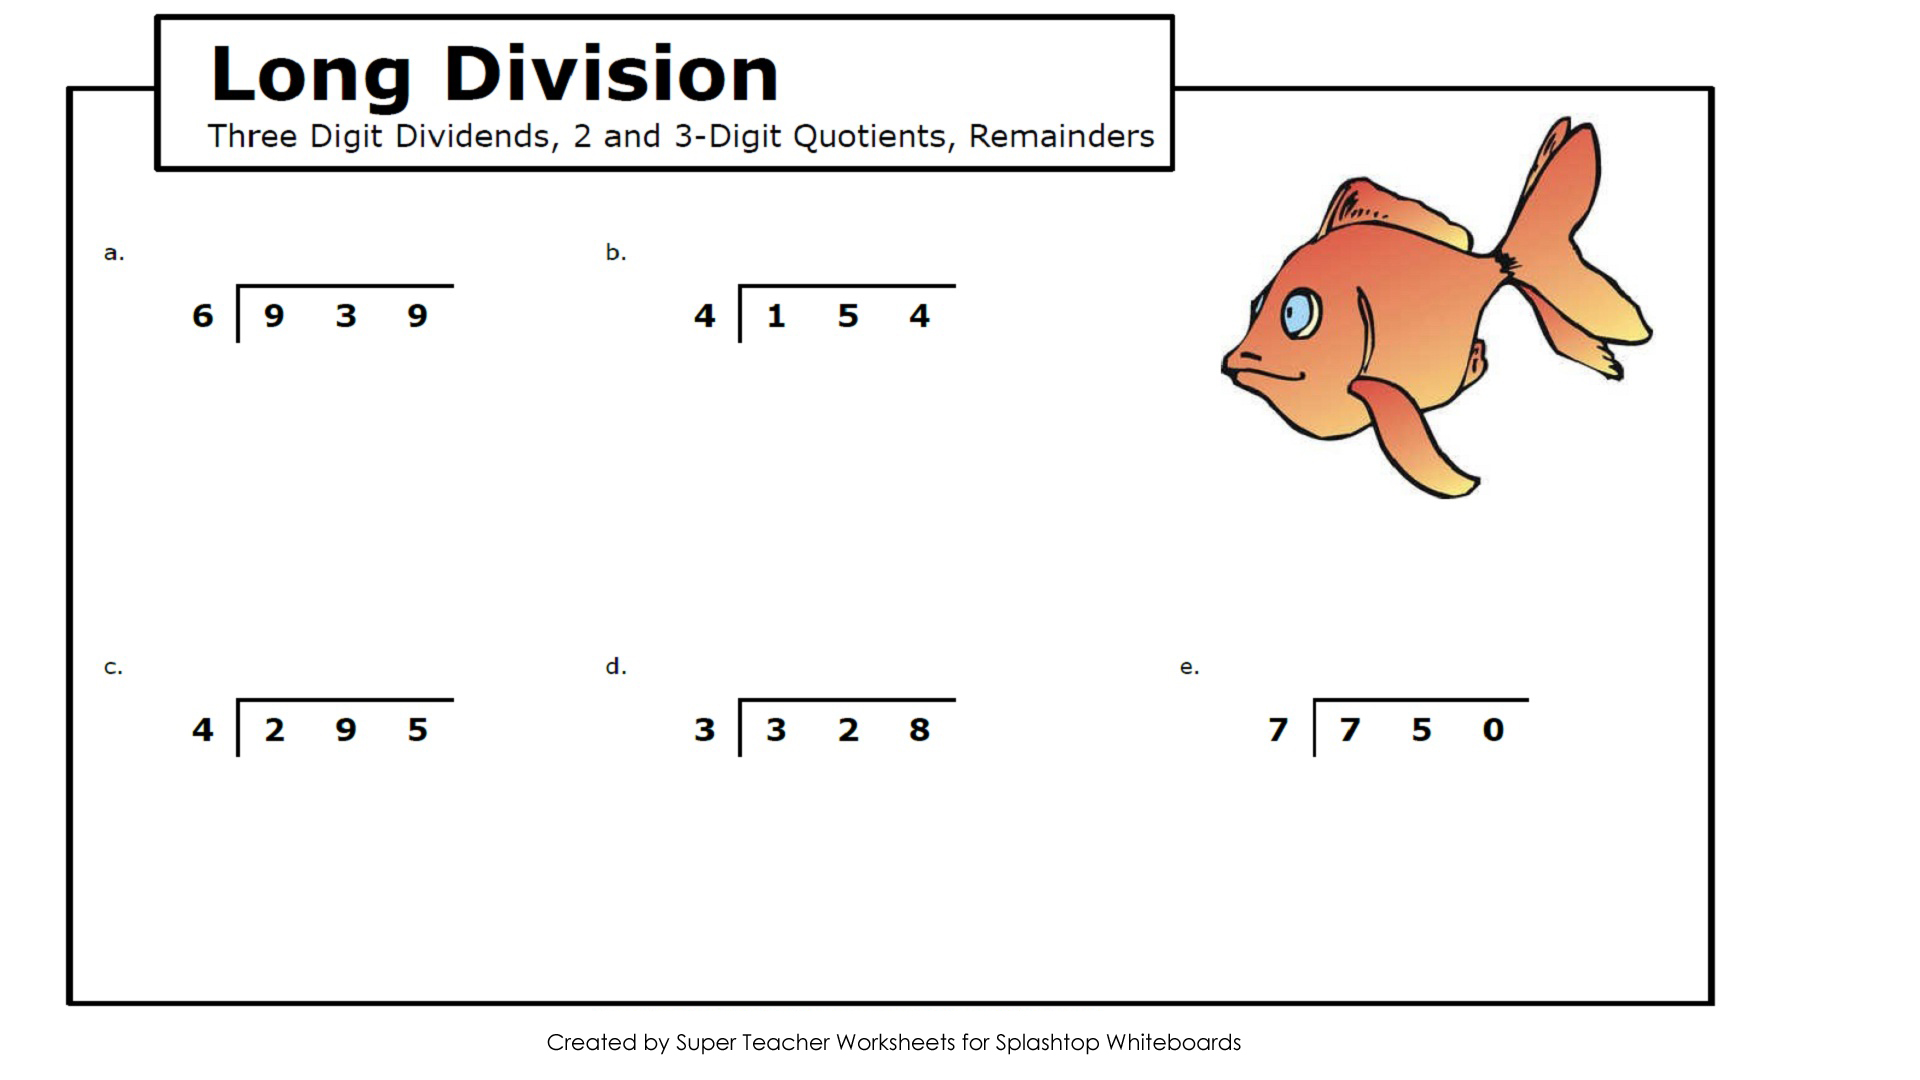 Worksheets Super Teacher Worksheets Science splashtop whiteboard background graphics long division 3 digit dividends